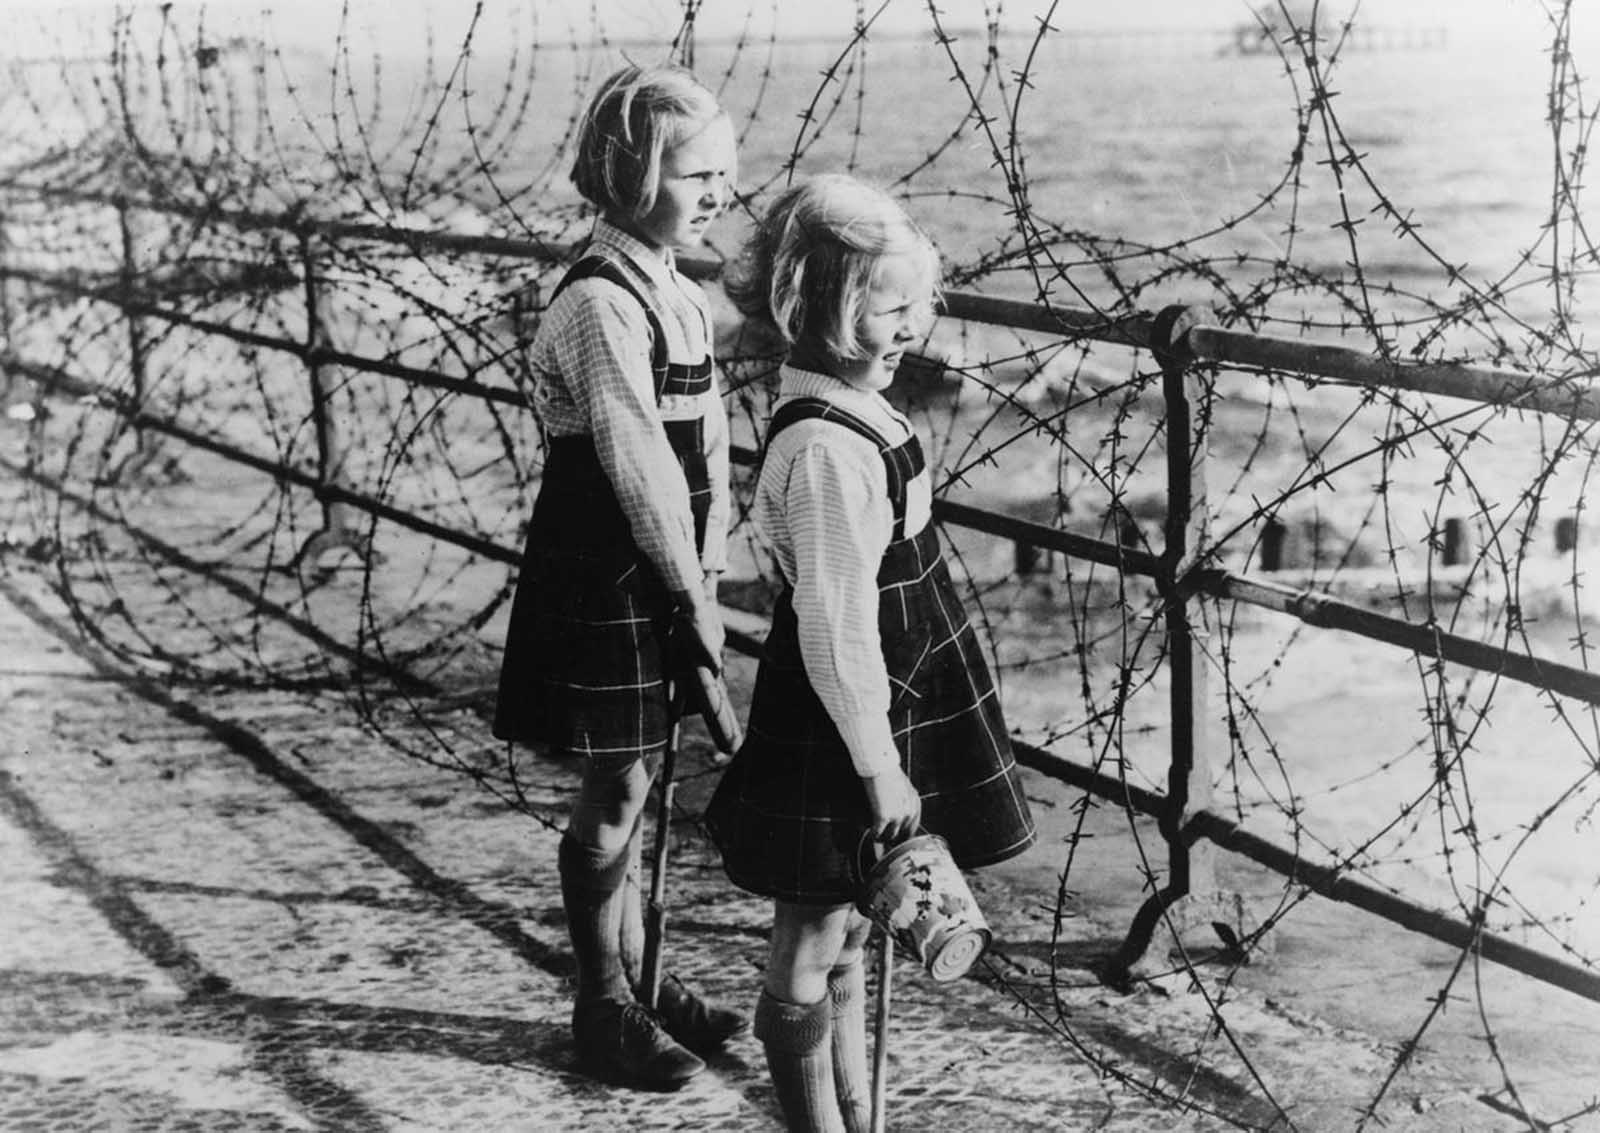 Two girls on the south coast of England look out toward the beach through a barbed wire fence constructed as part of Britain's coastal defenses.